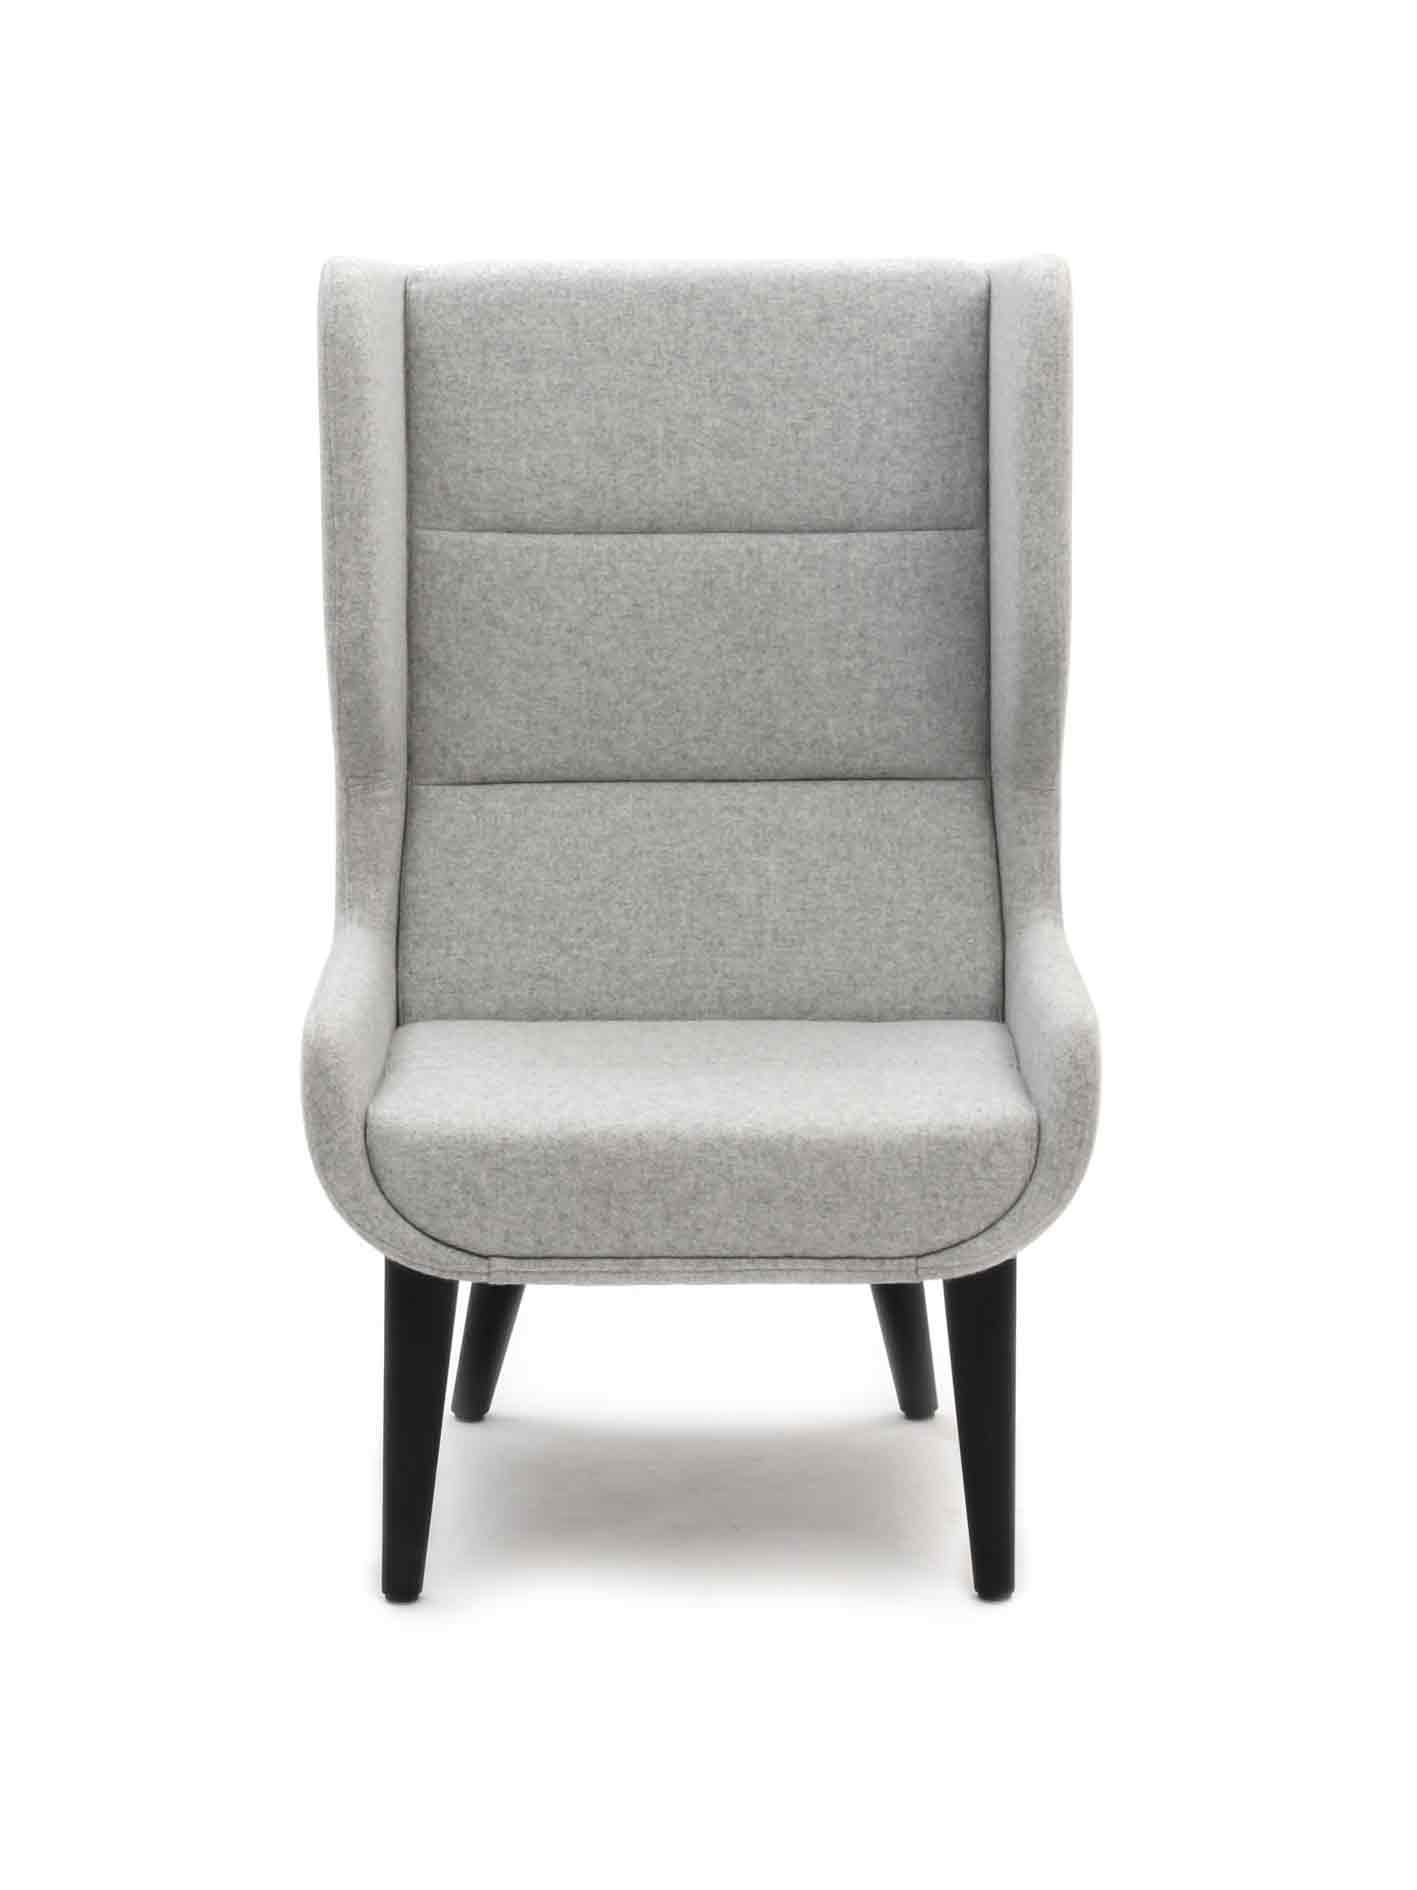 Hush Chair Richardsons Office Furniture And Supplies